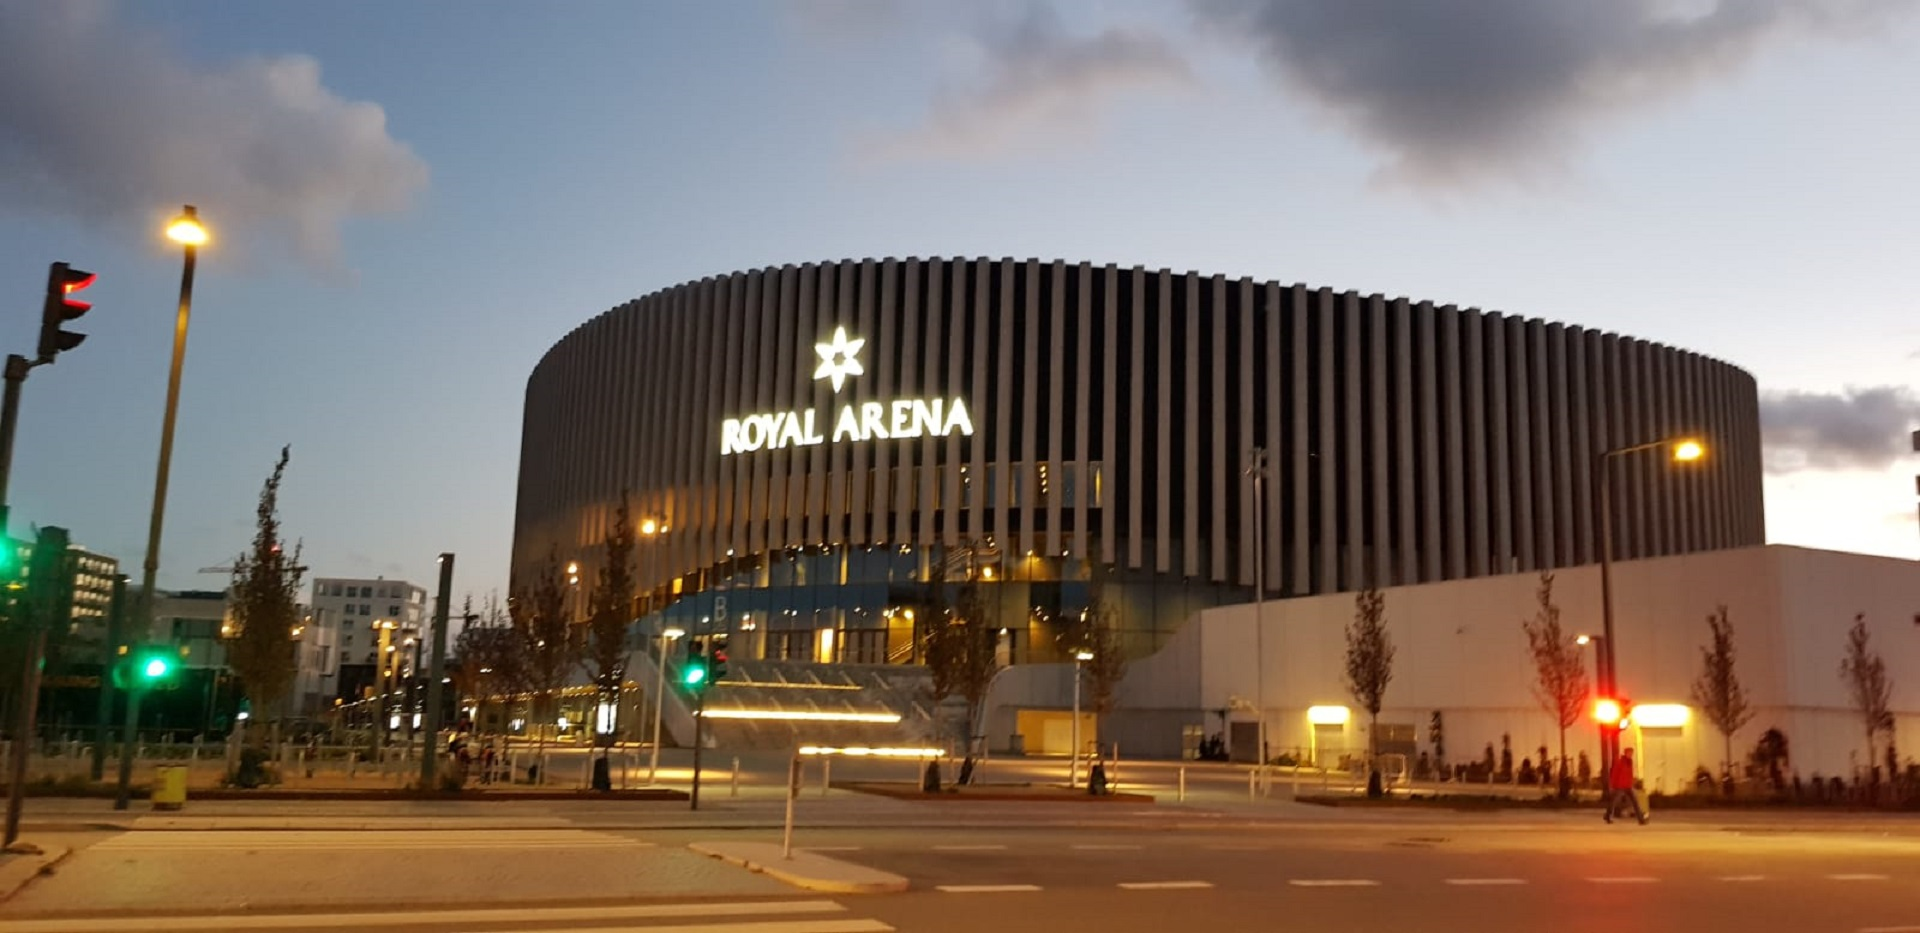 Royal Arena in Kopenhagen, Dänemark